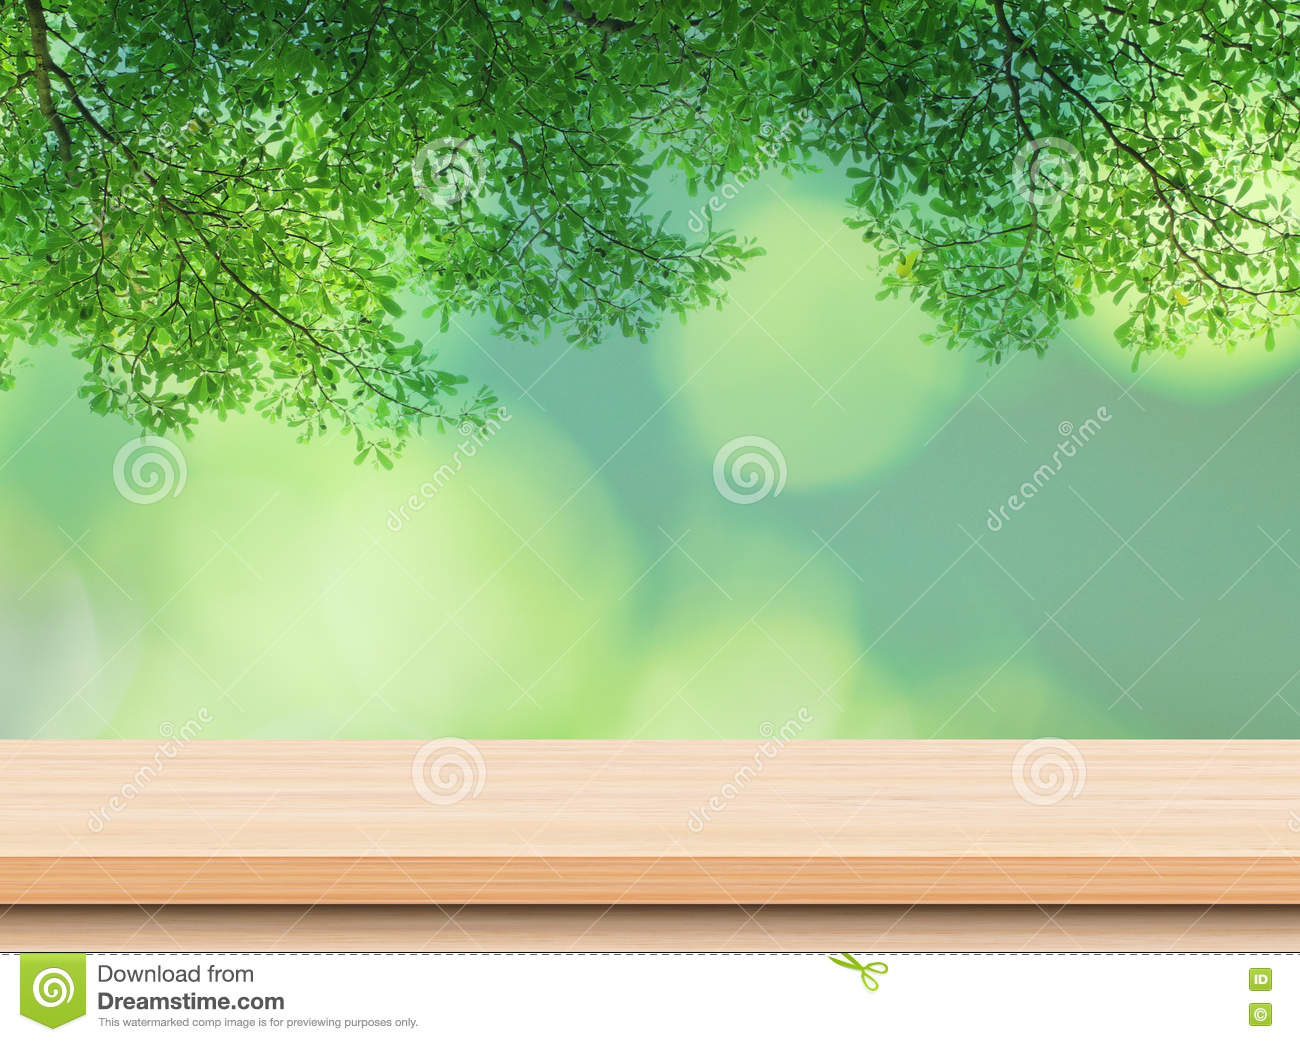 Royalty Free Stock Photo. Download Empty Light Wood Table Top ...